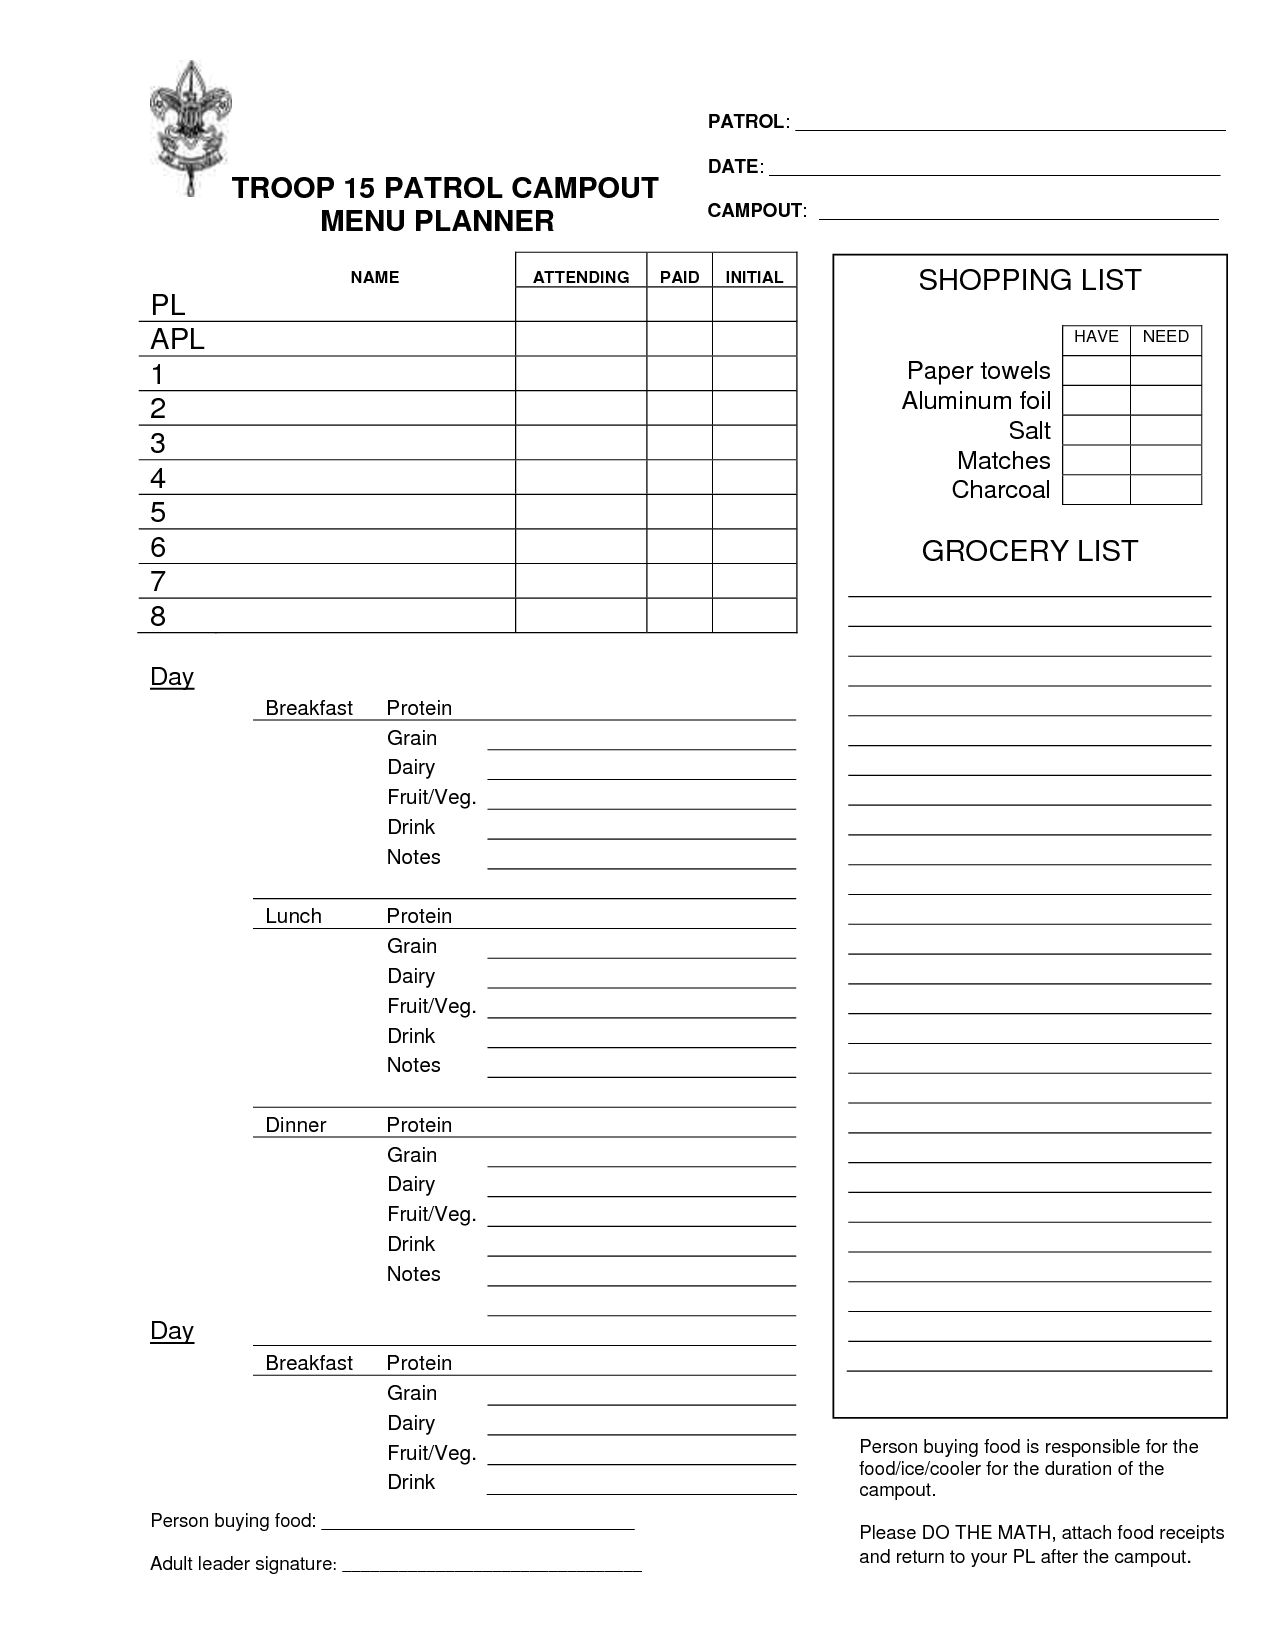 Boy Scout Campout Planning Worksheet